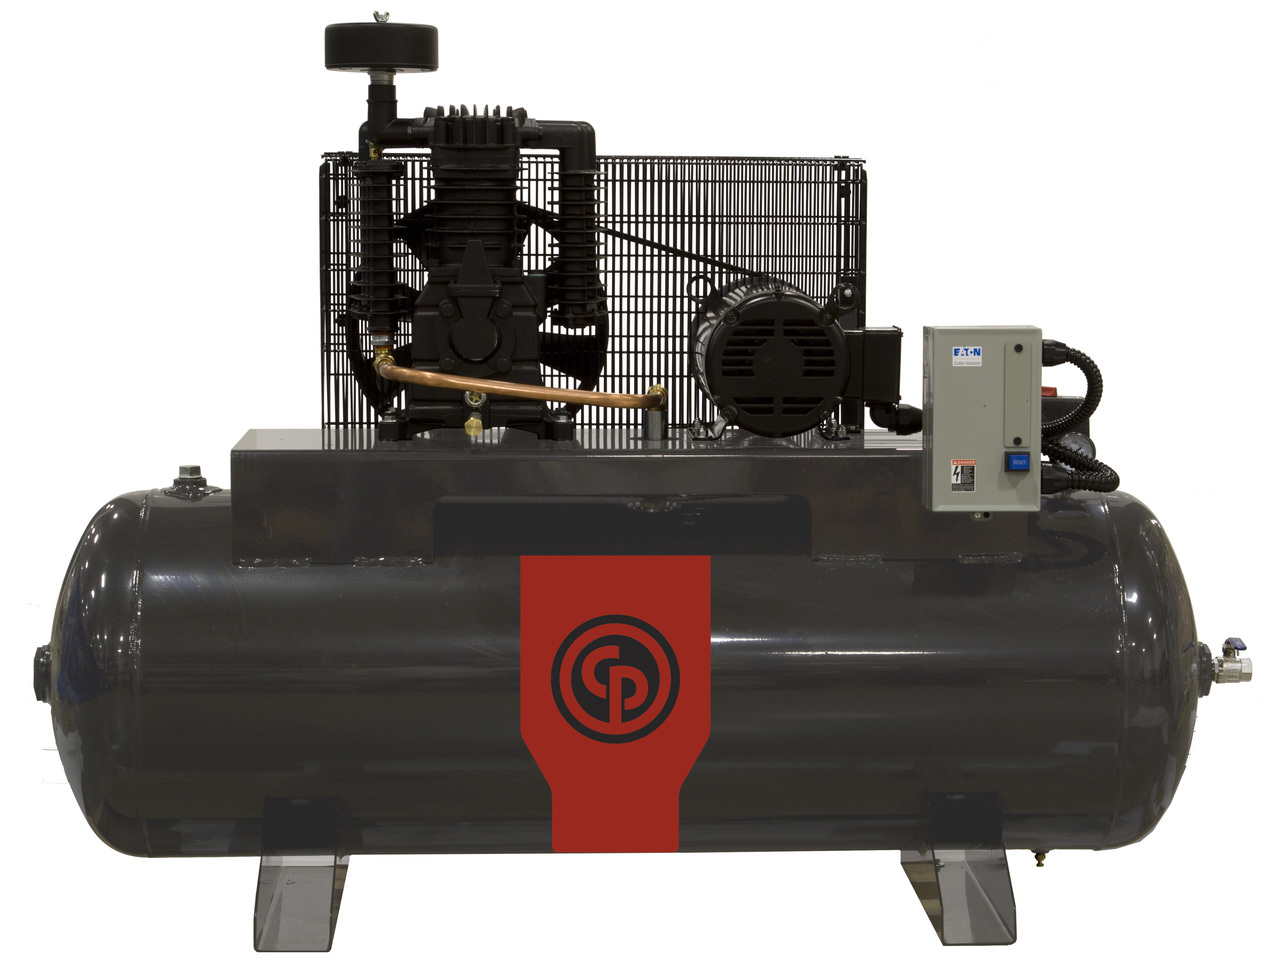 Chicago Pneumatic RCP-7581HS 7.5 HP 208-230 Volt Single Phase Two Stage 80 Gallon Horizontal Air Compressor